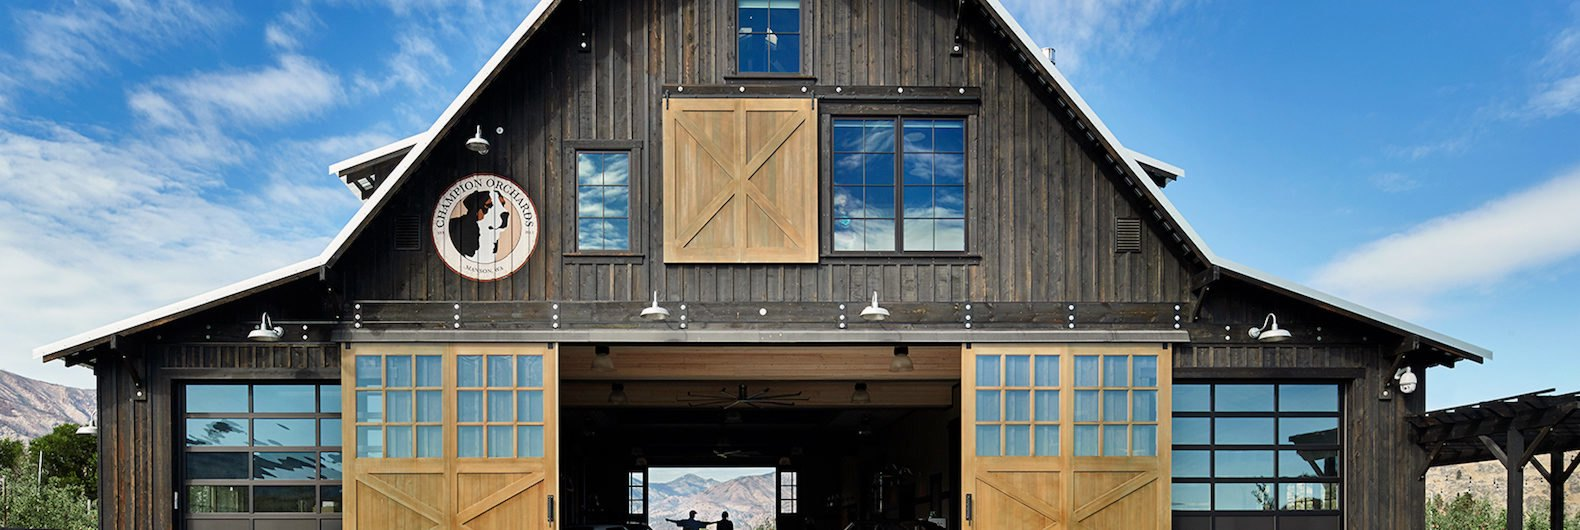 Gorgeous Washington barn house marries rustic elements with modern ...